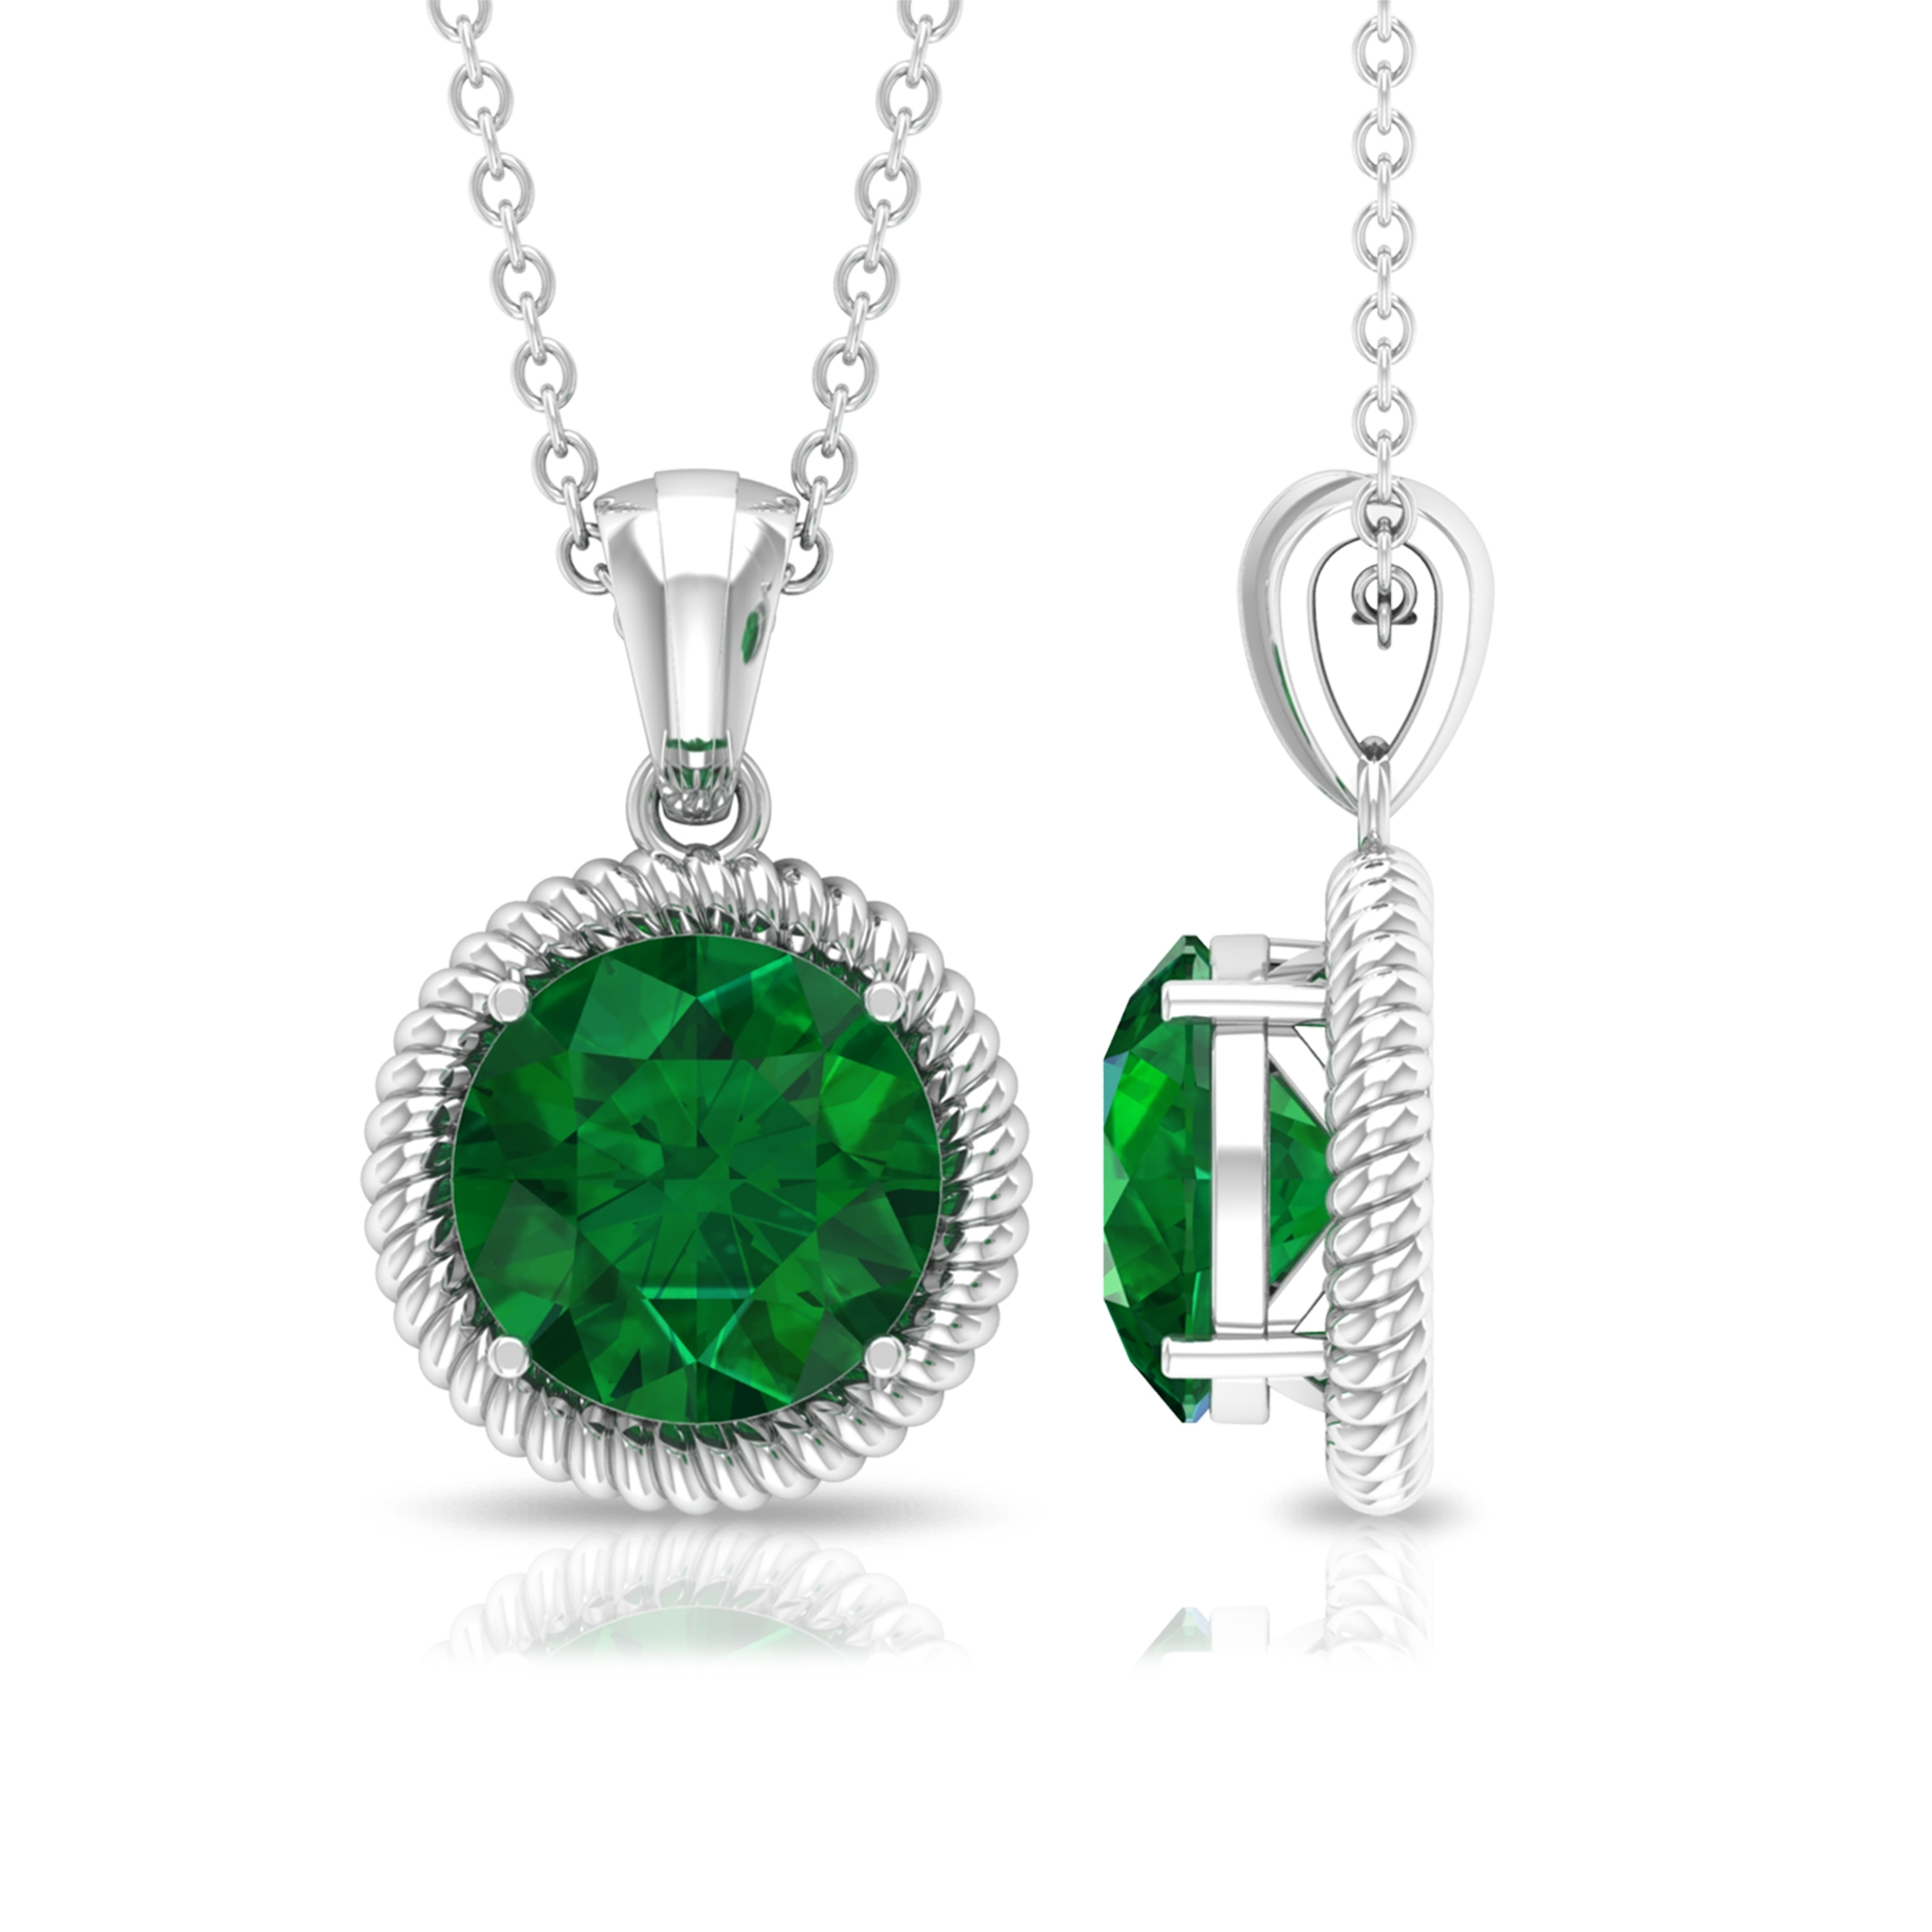 8 MM Round Cut Emerald Solitaire Pendant in 4 Prong Setting with Rope Frame